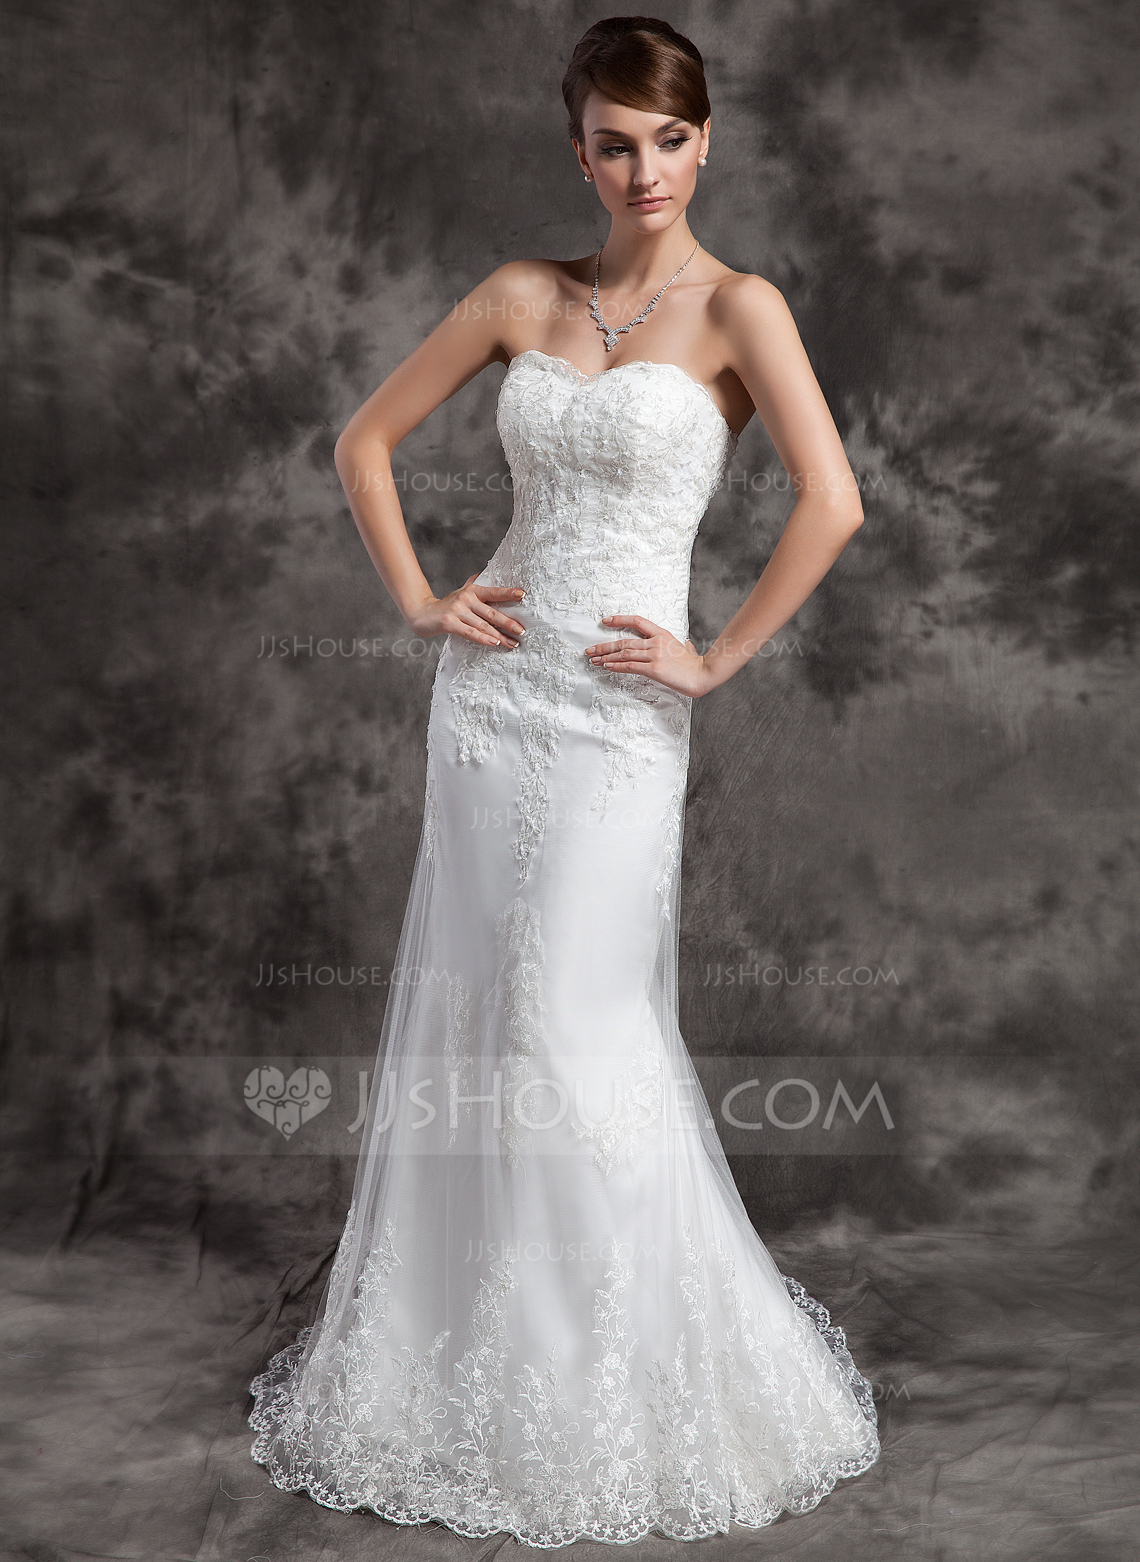 Trumpet Mermaid Sweetheart Court Train Tulle Wedding Dress With Lace Beading g jjshouse wedding dress Home Wedding Dresses Loading zoom